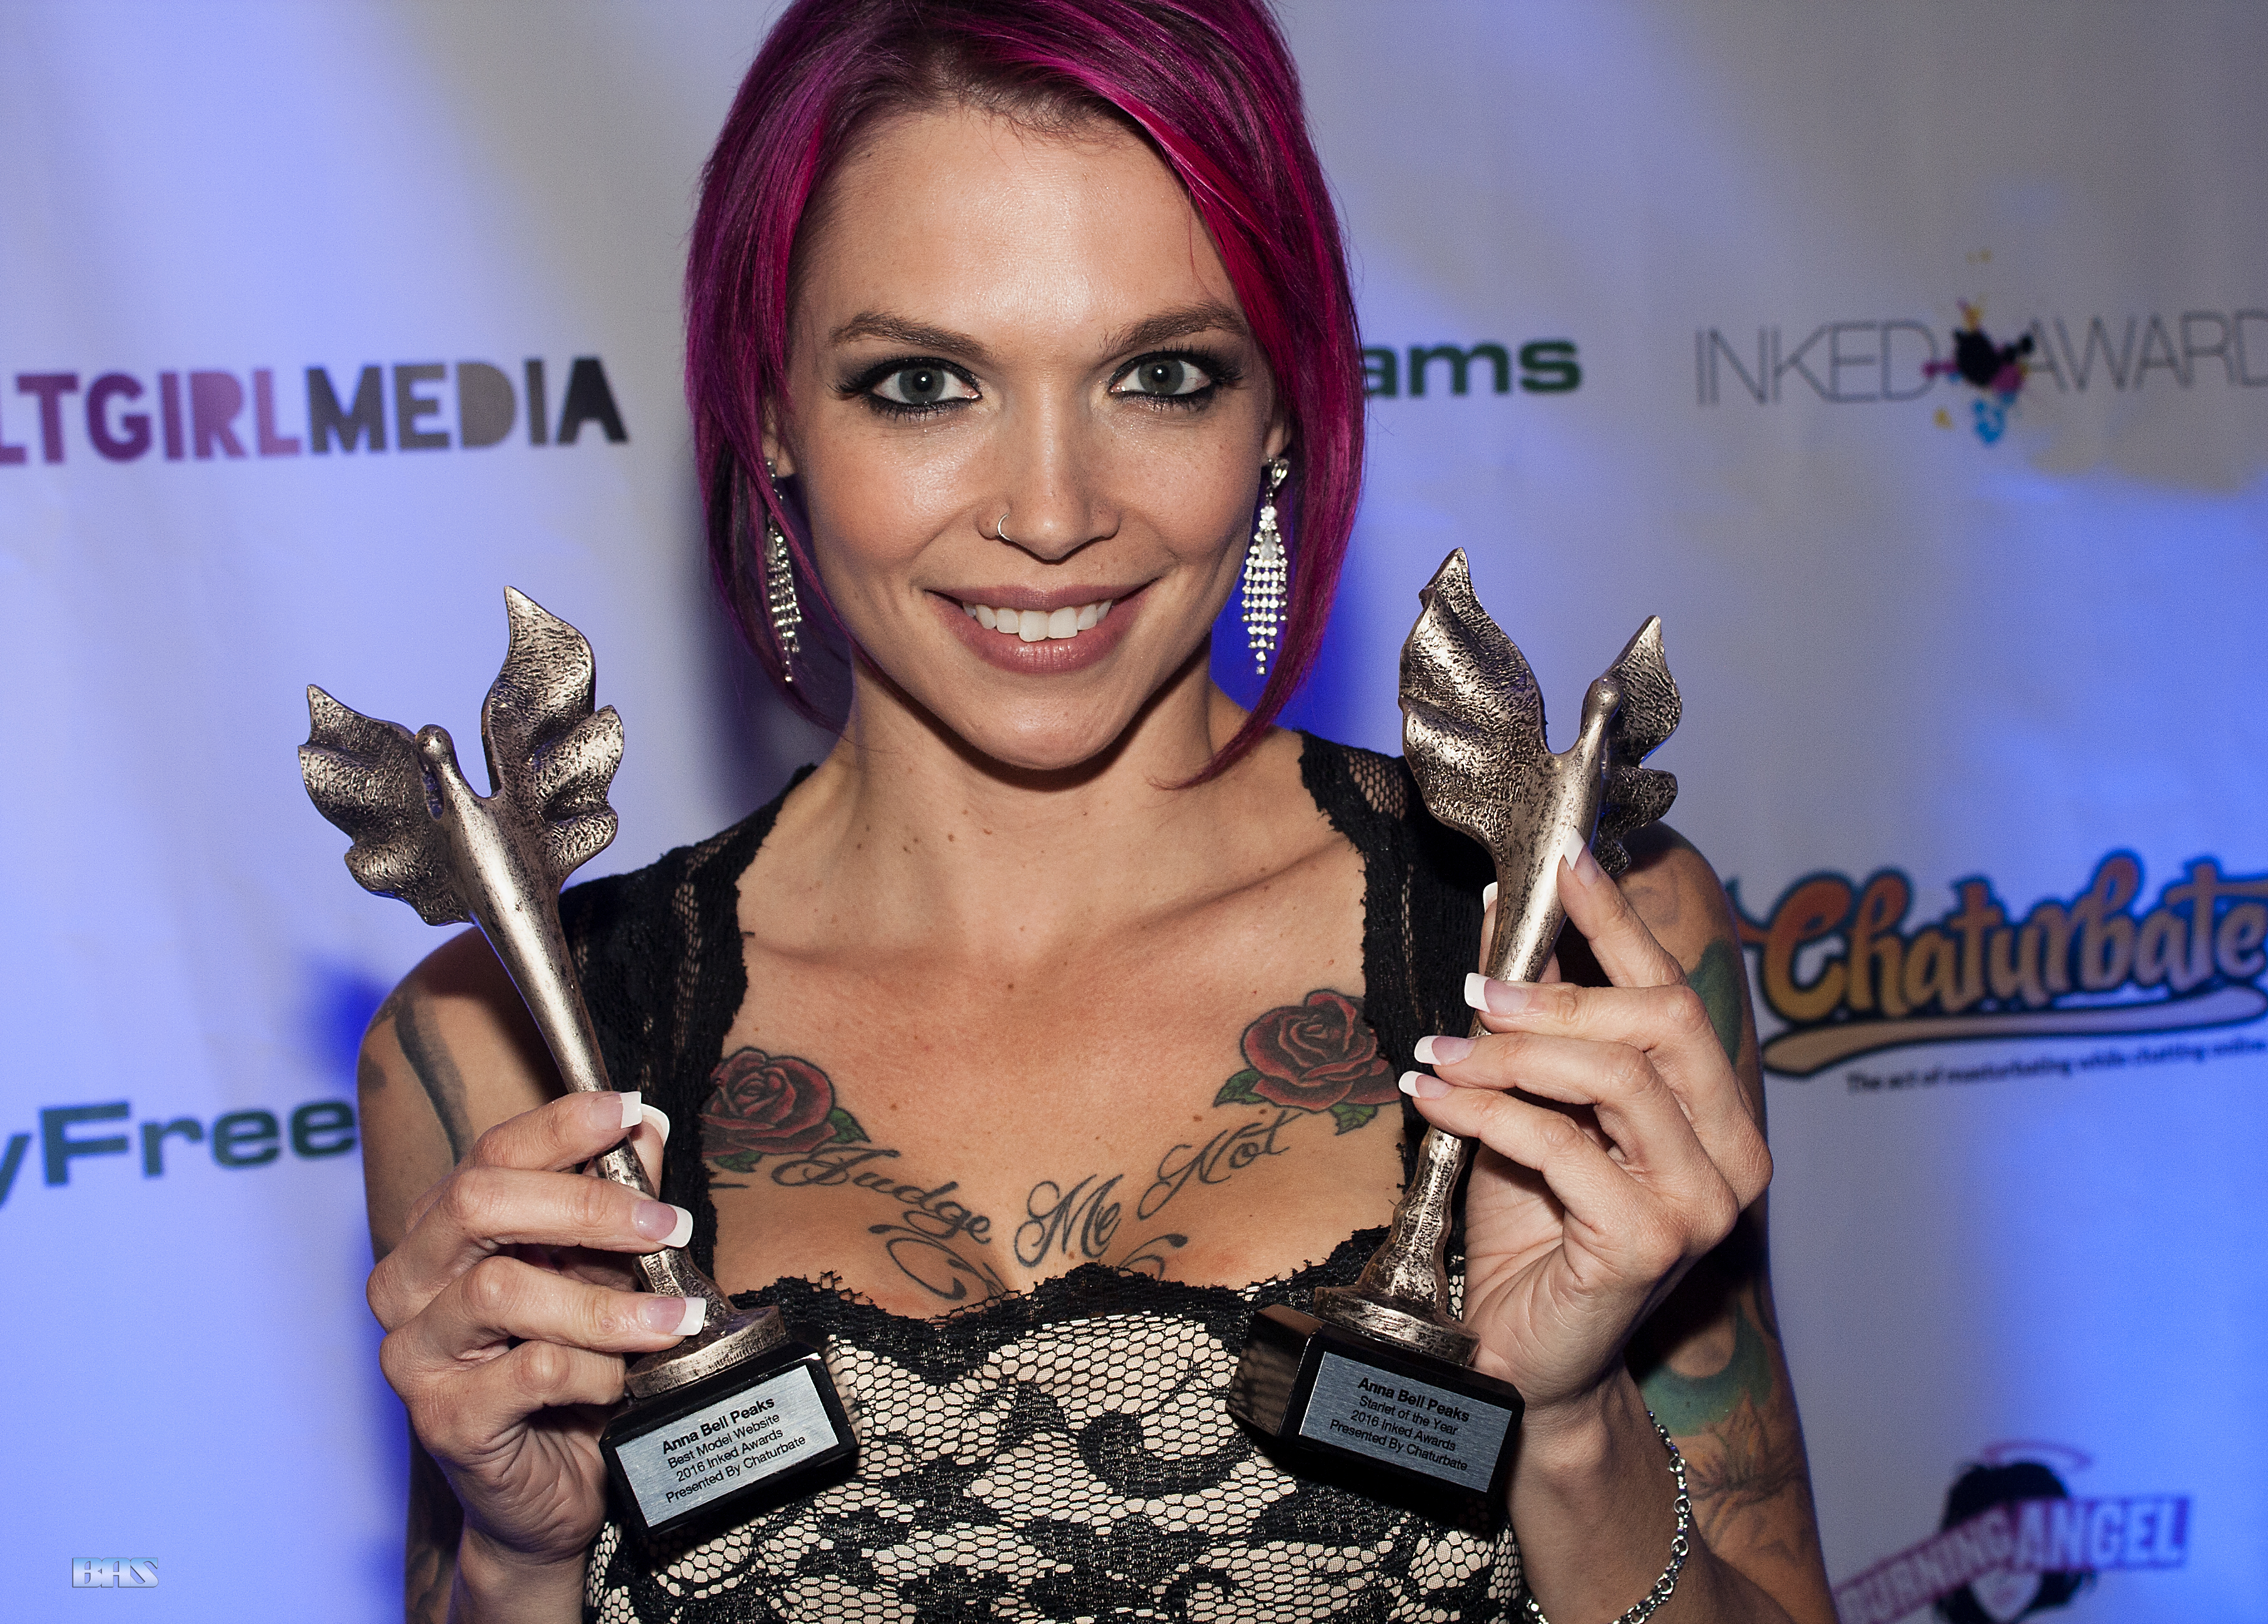 Anna_Bell_Peaks_at_Inked_Awards_2016_(31805842982)